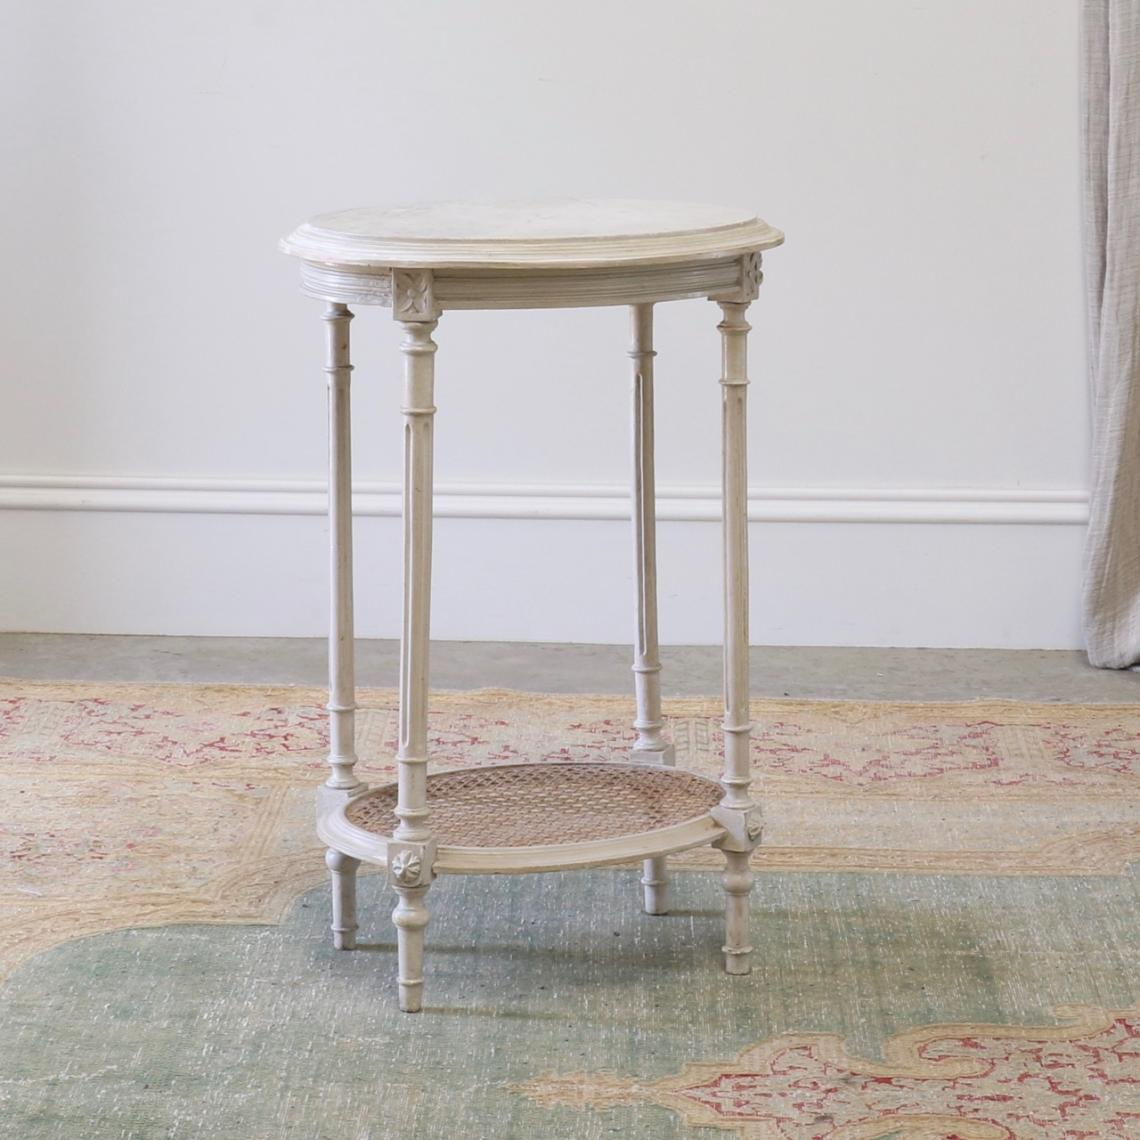 114-07 - Small Oval Table